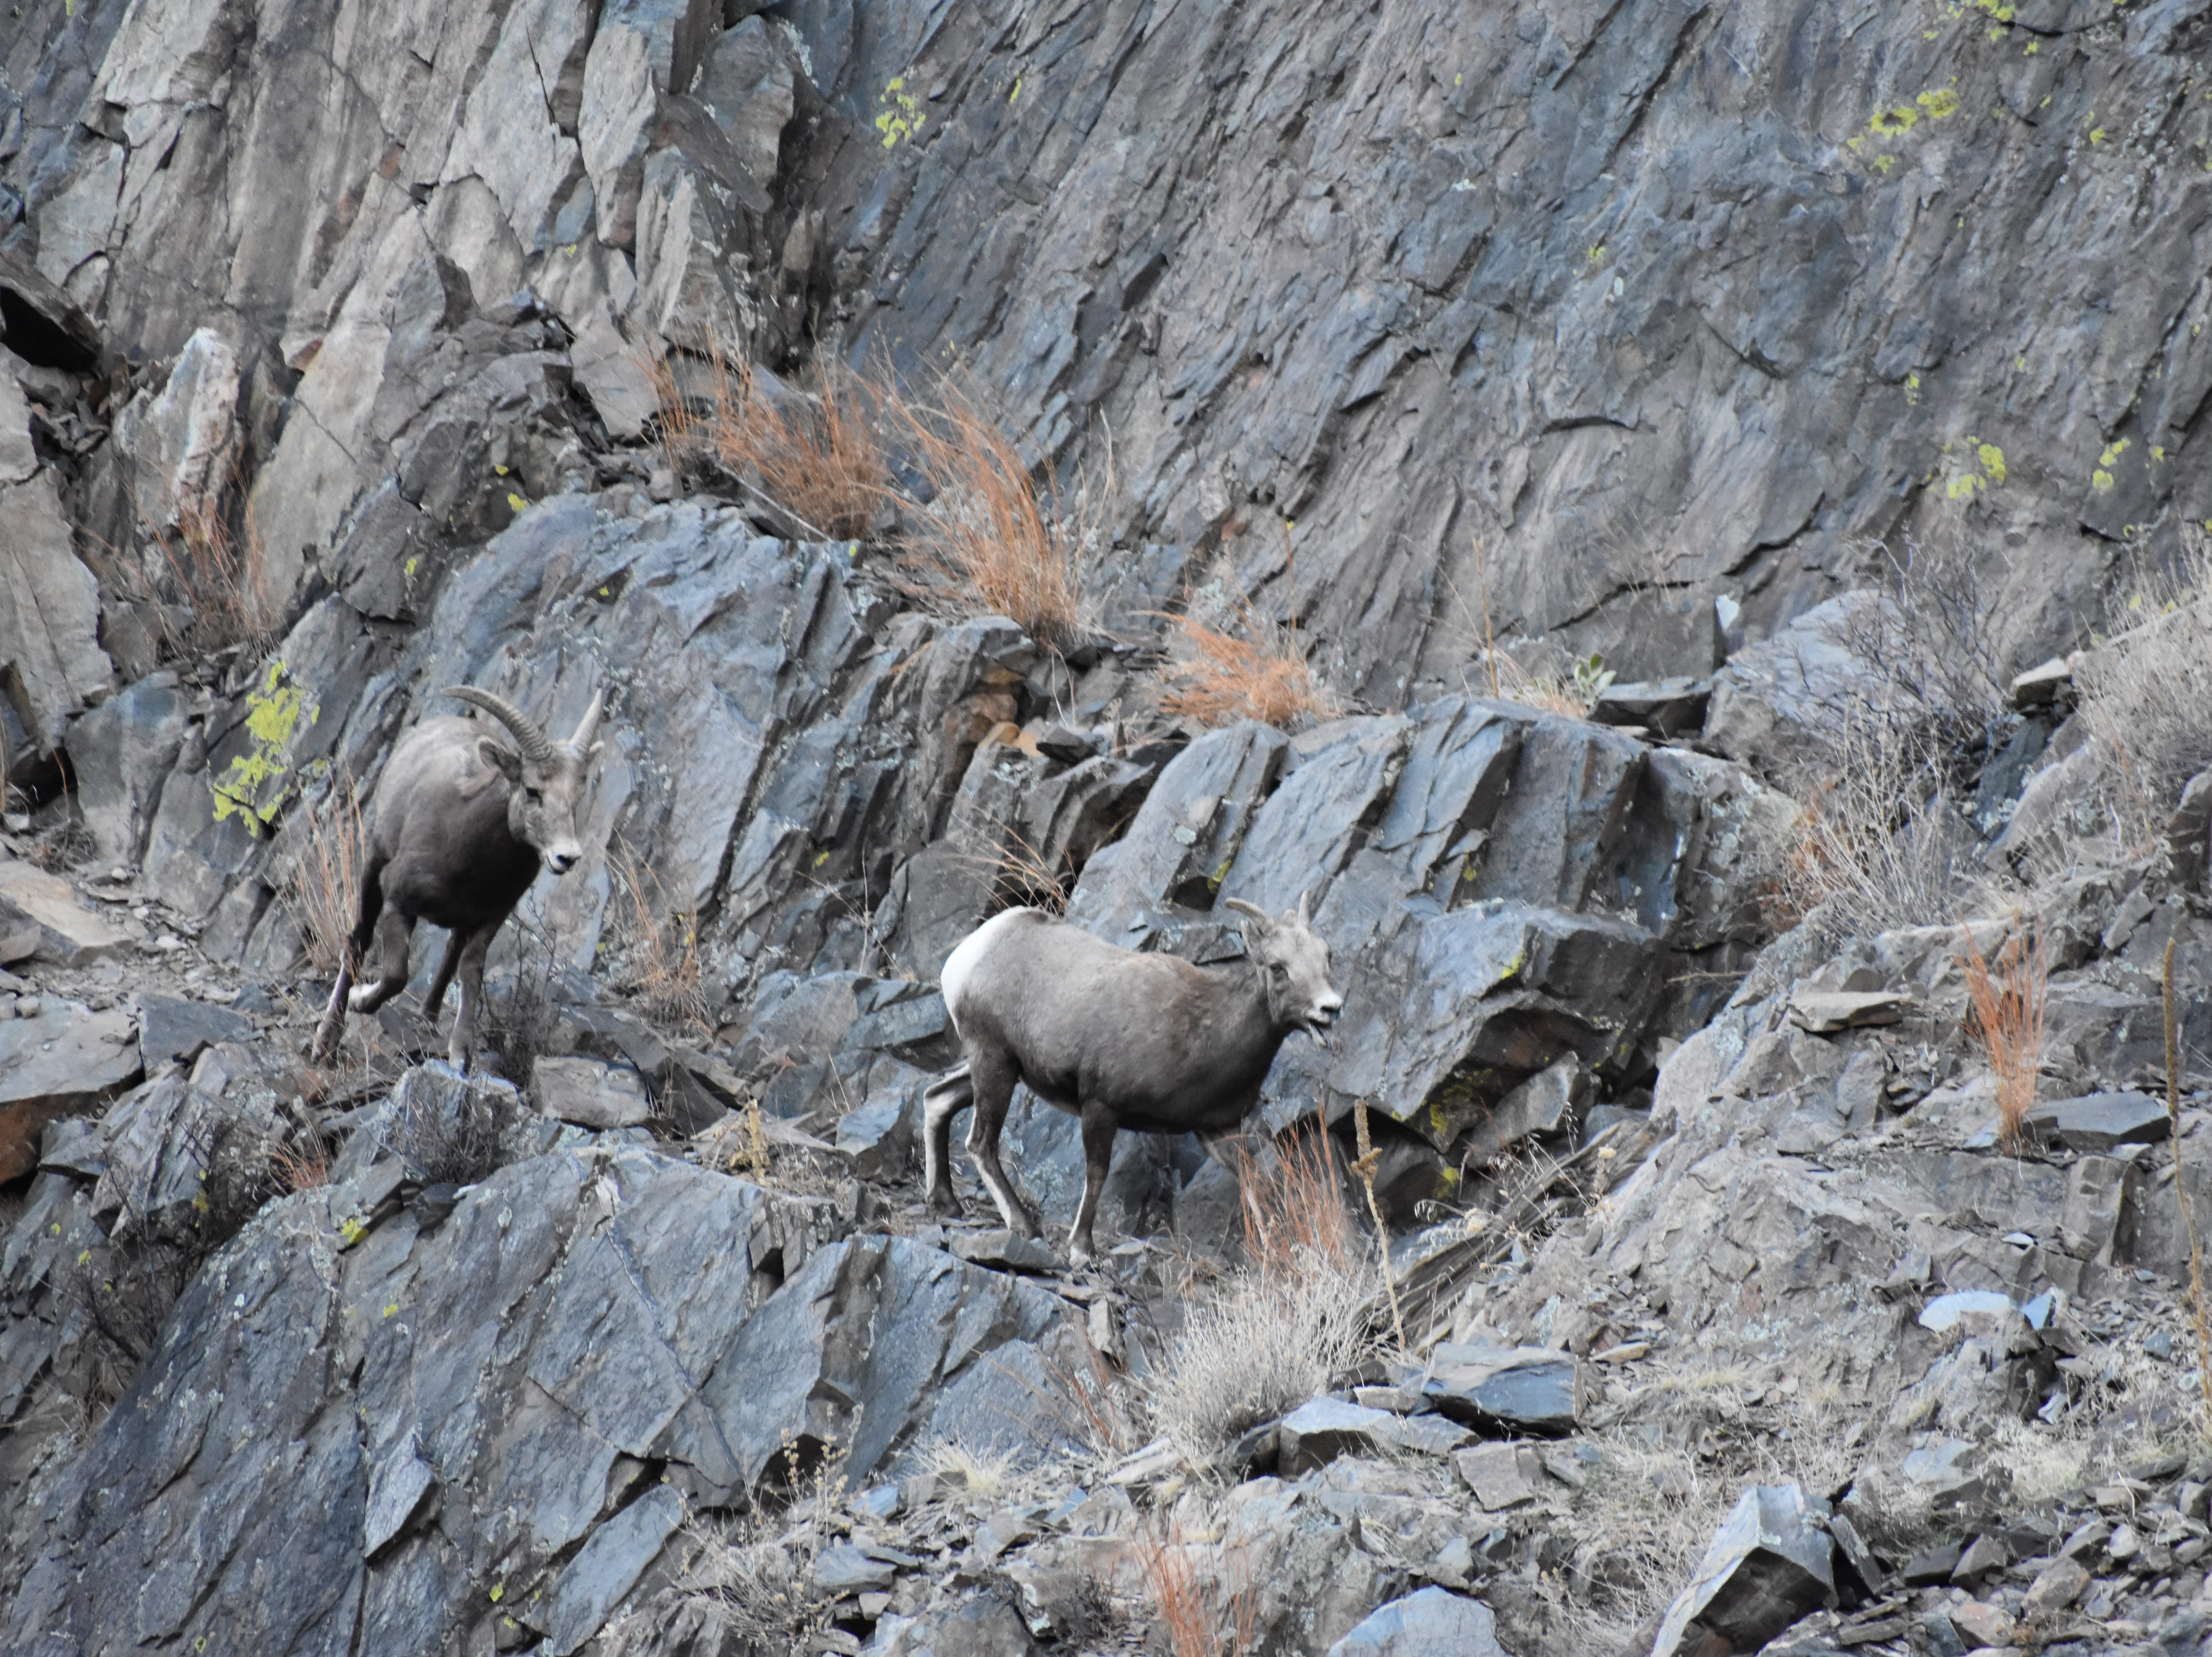 A young bighorn ram chases a tired ewe on a cliff face near the mouth of the Big Thompson Canyon.